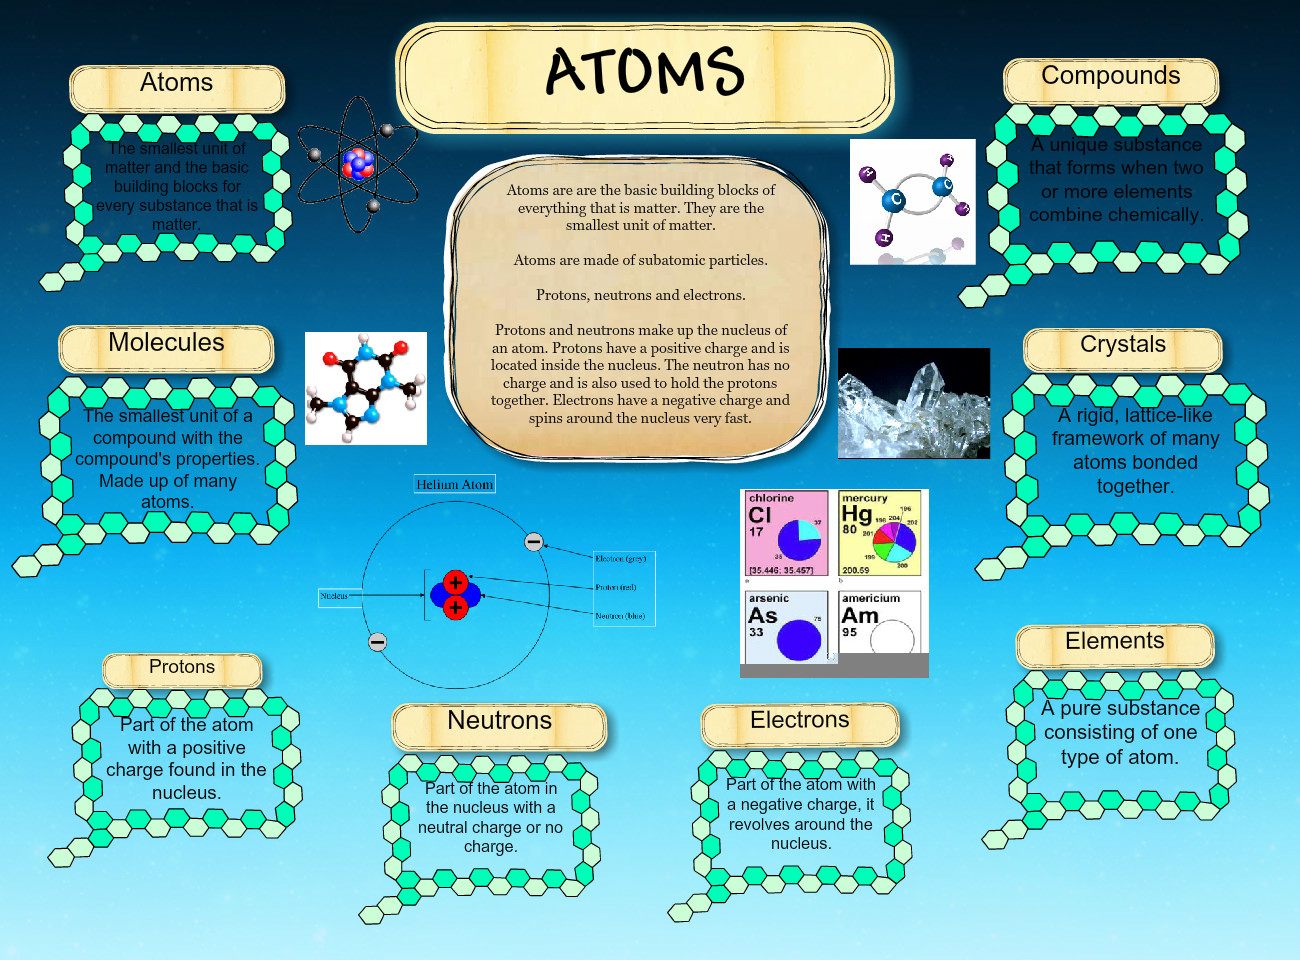 Atoms Infographic Atoms Chemistry Compounds Crystals